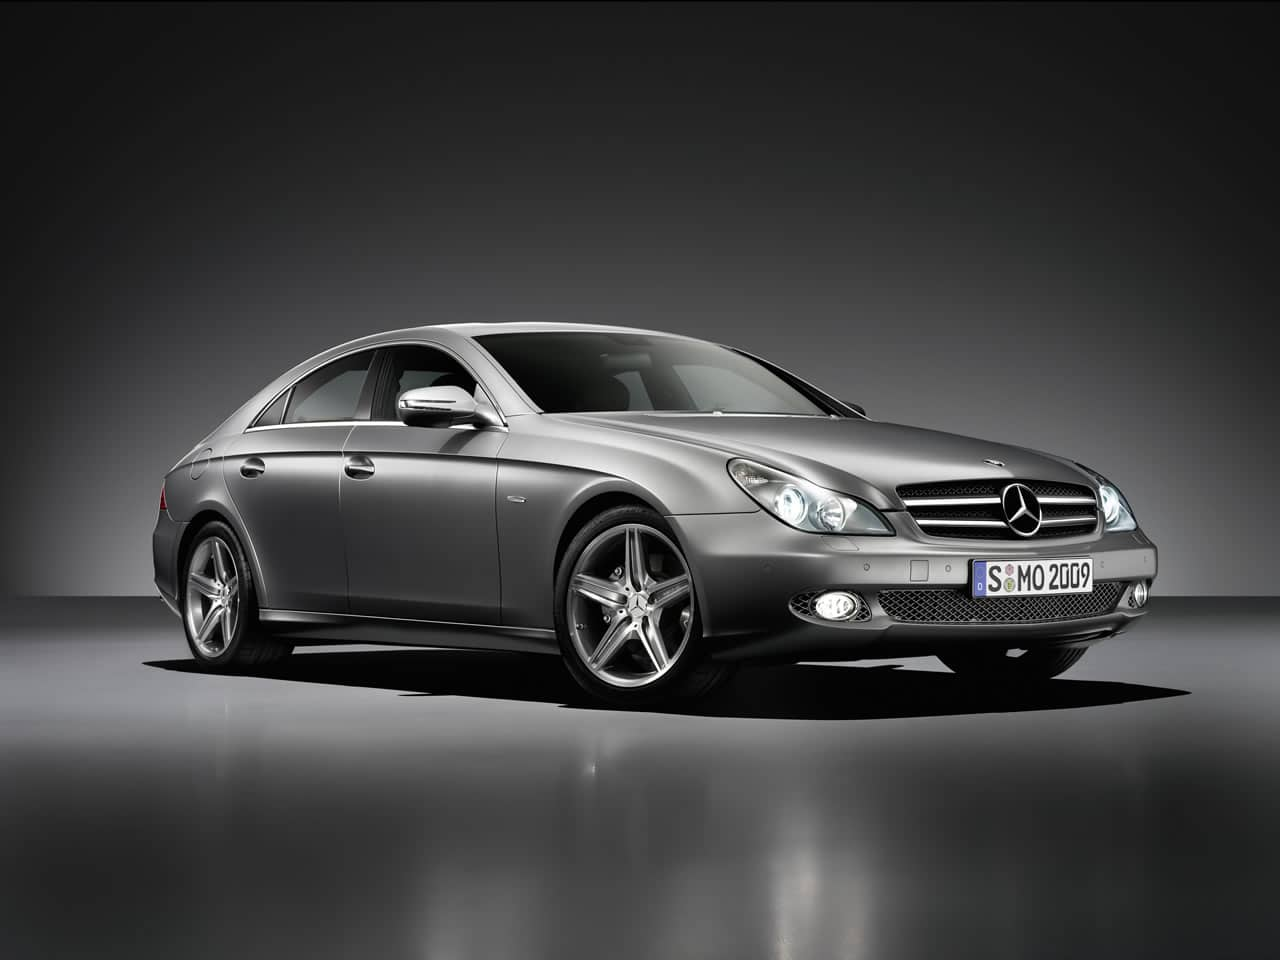 mercedes benz cls 350 cgi grand edition wallpaper mercedes benz